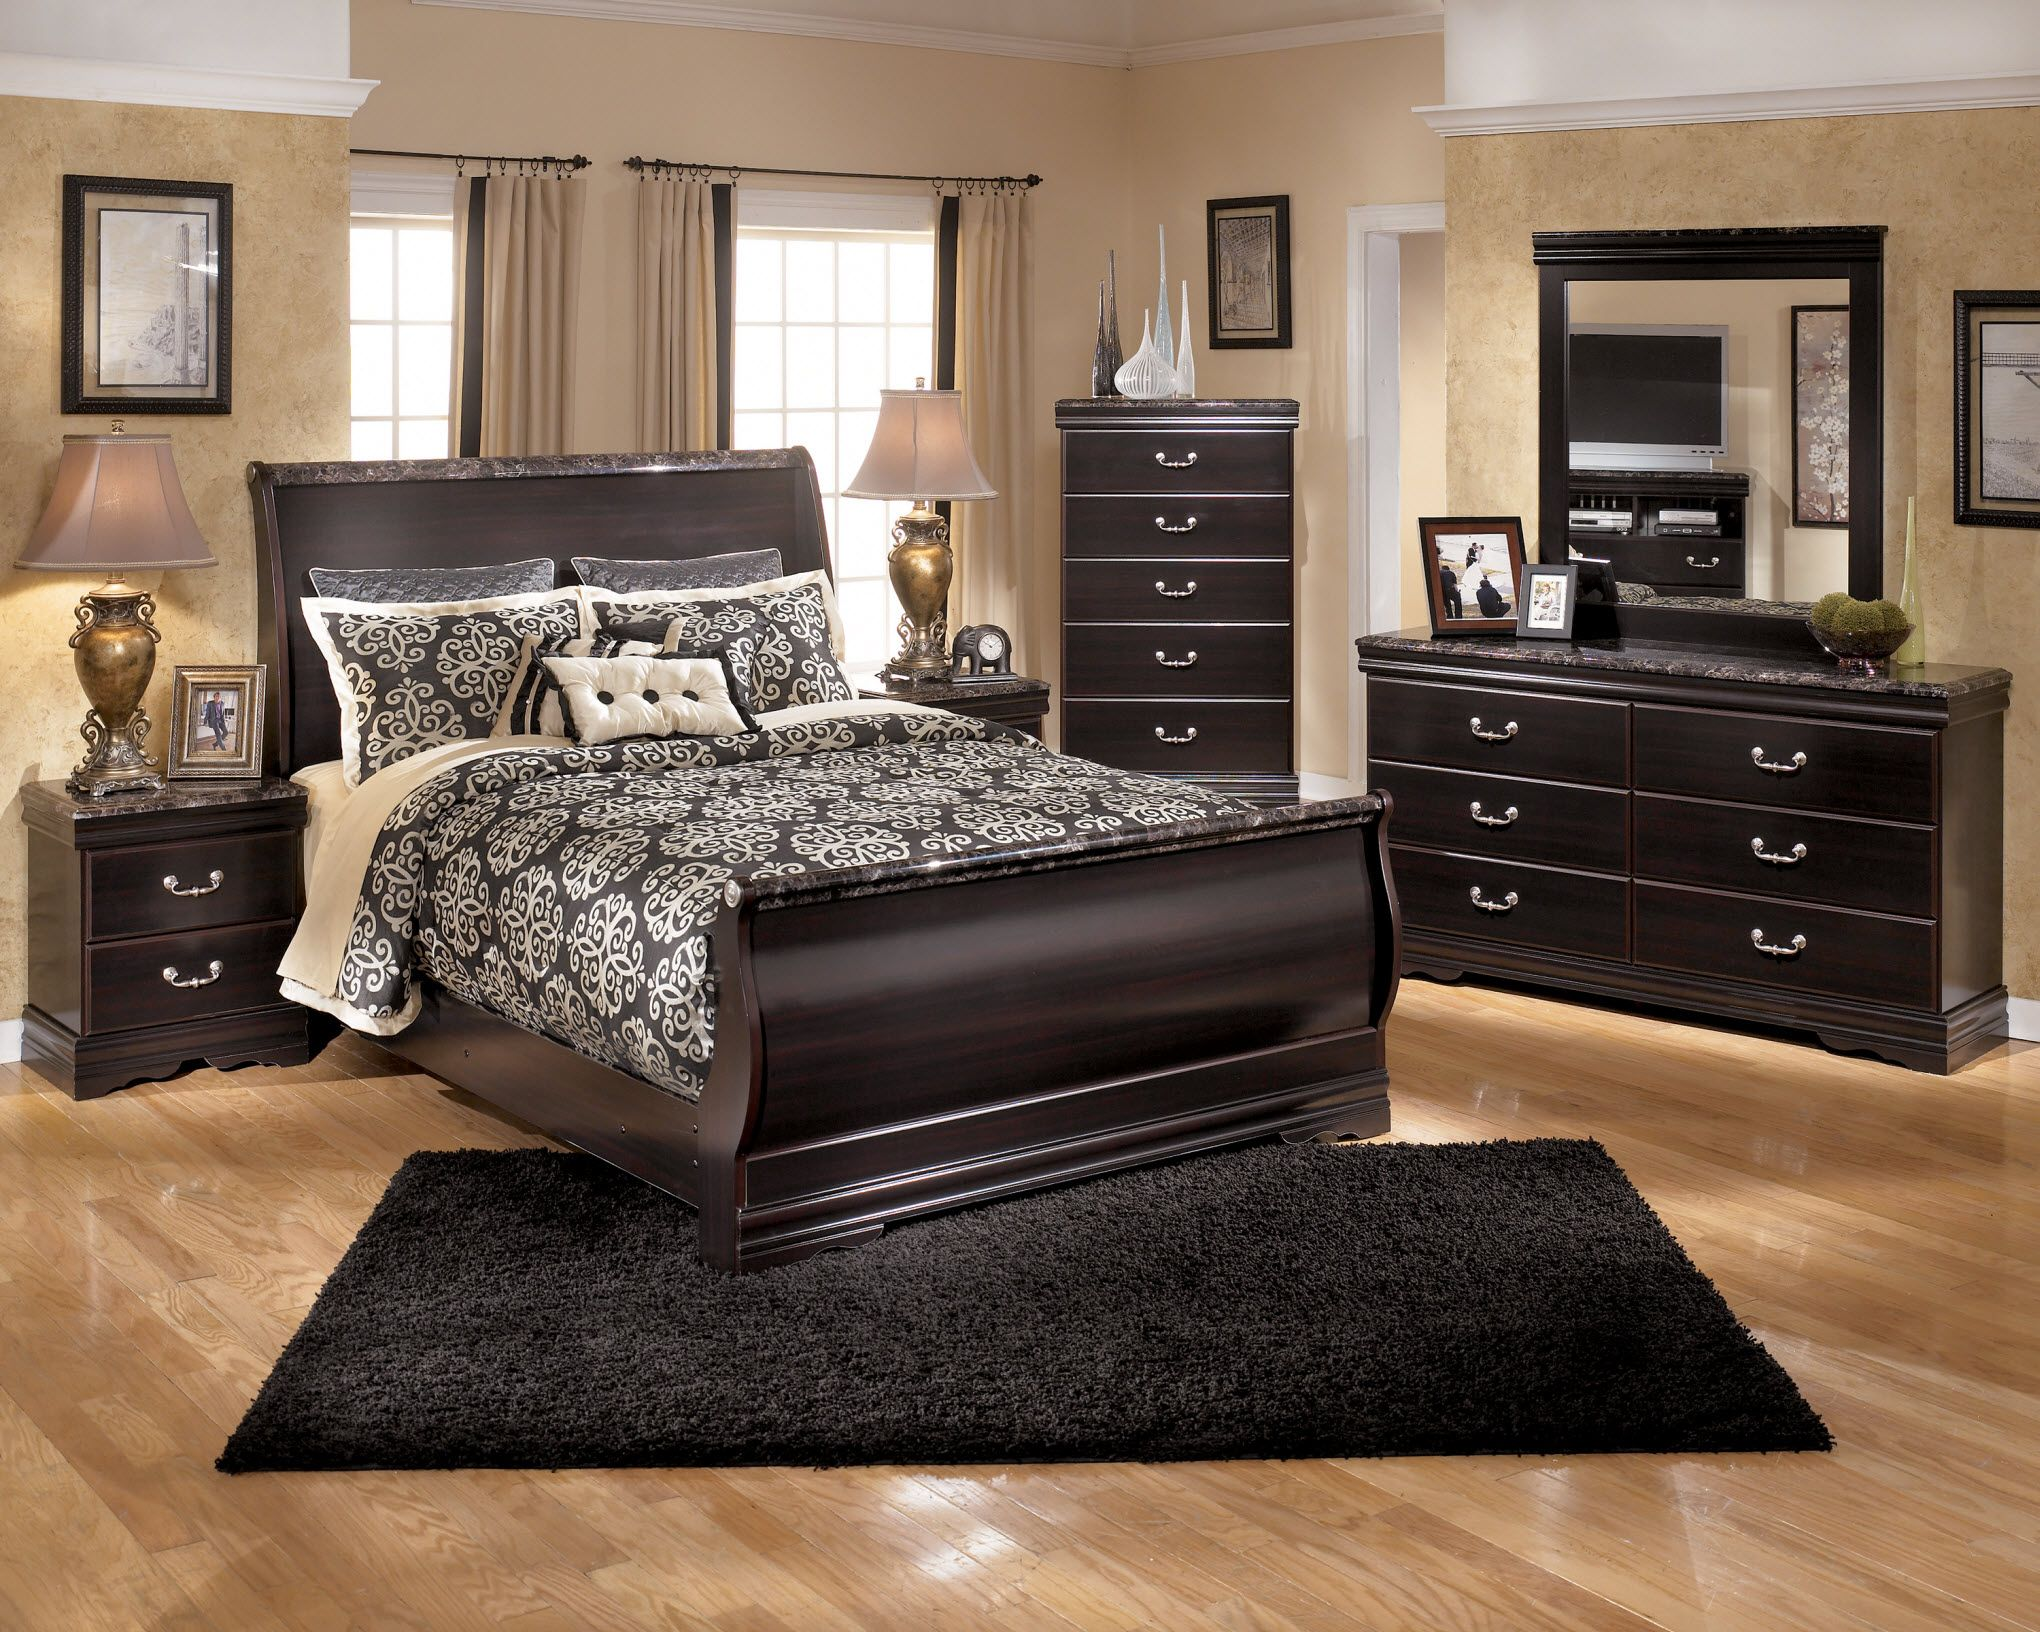 What You Should Know Before Buying Bedroom Furniture Sets   Http://www.